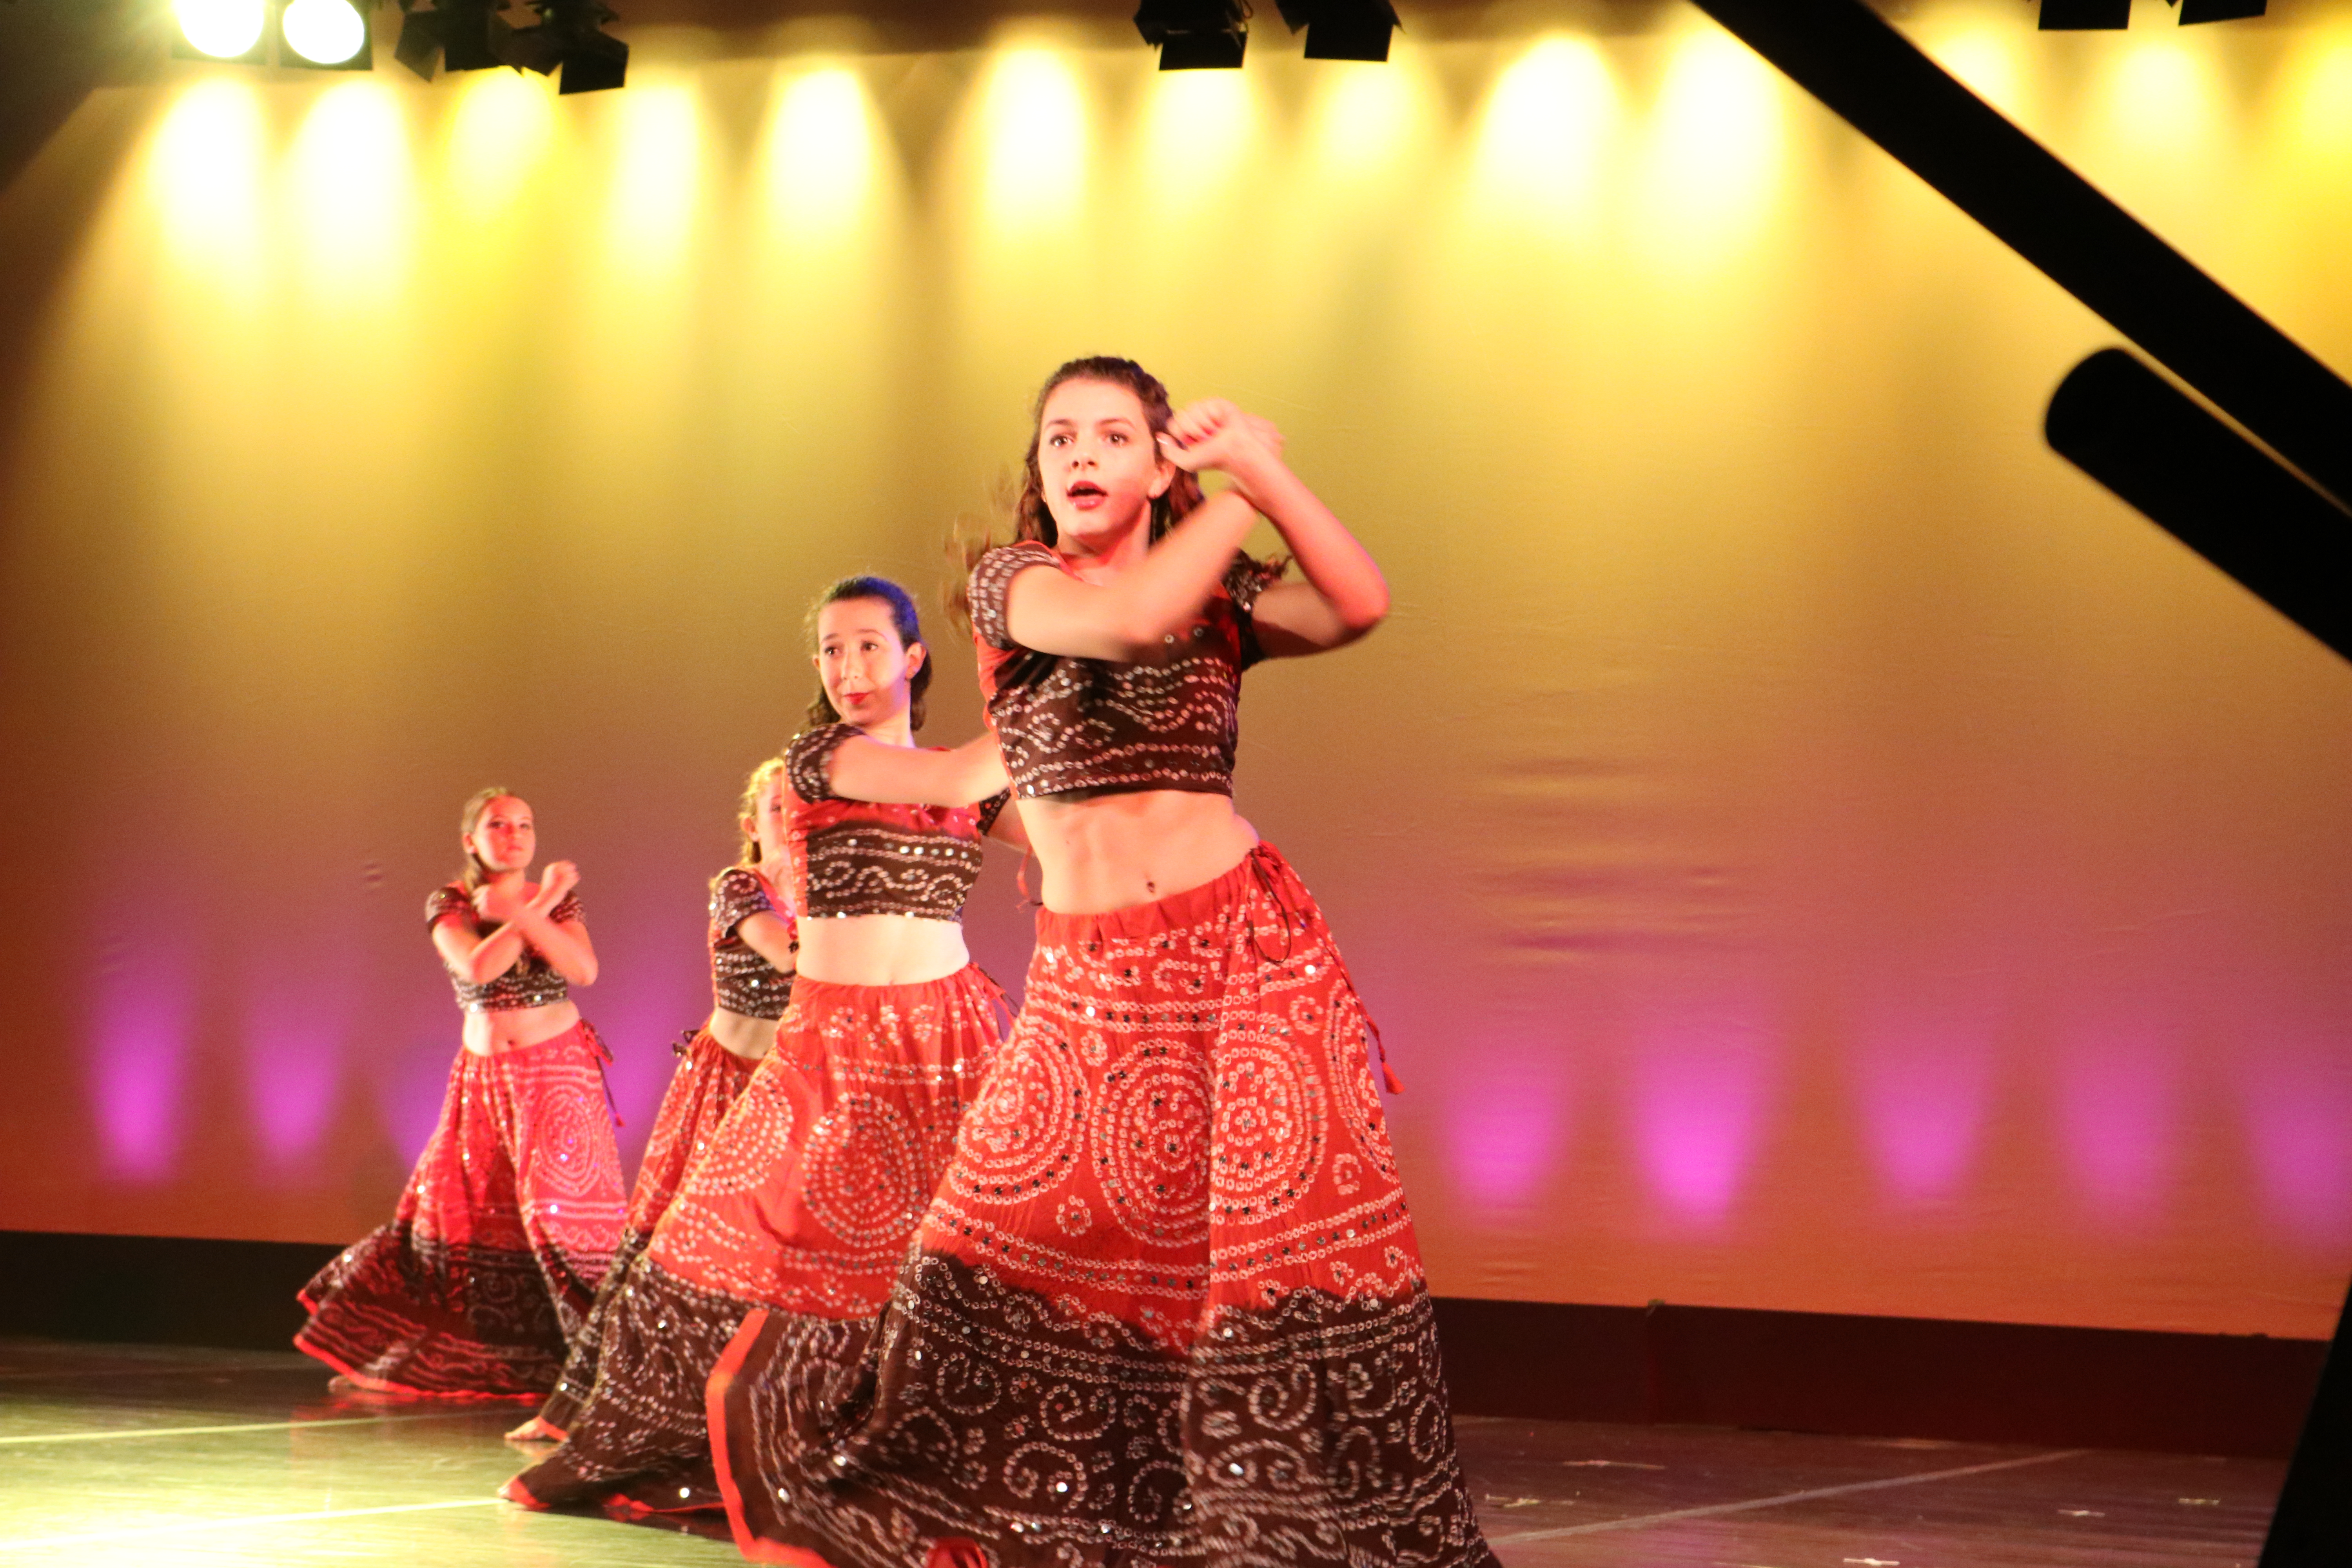 Cate Herman '21, Mira Chaskes '20 and Nina Fisher '22 dance a Bollywood-inspired routine.